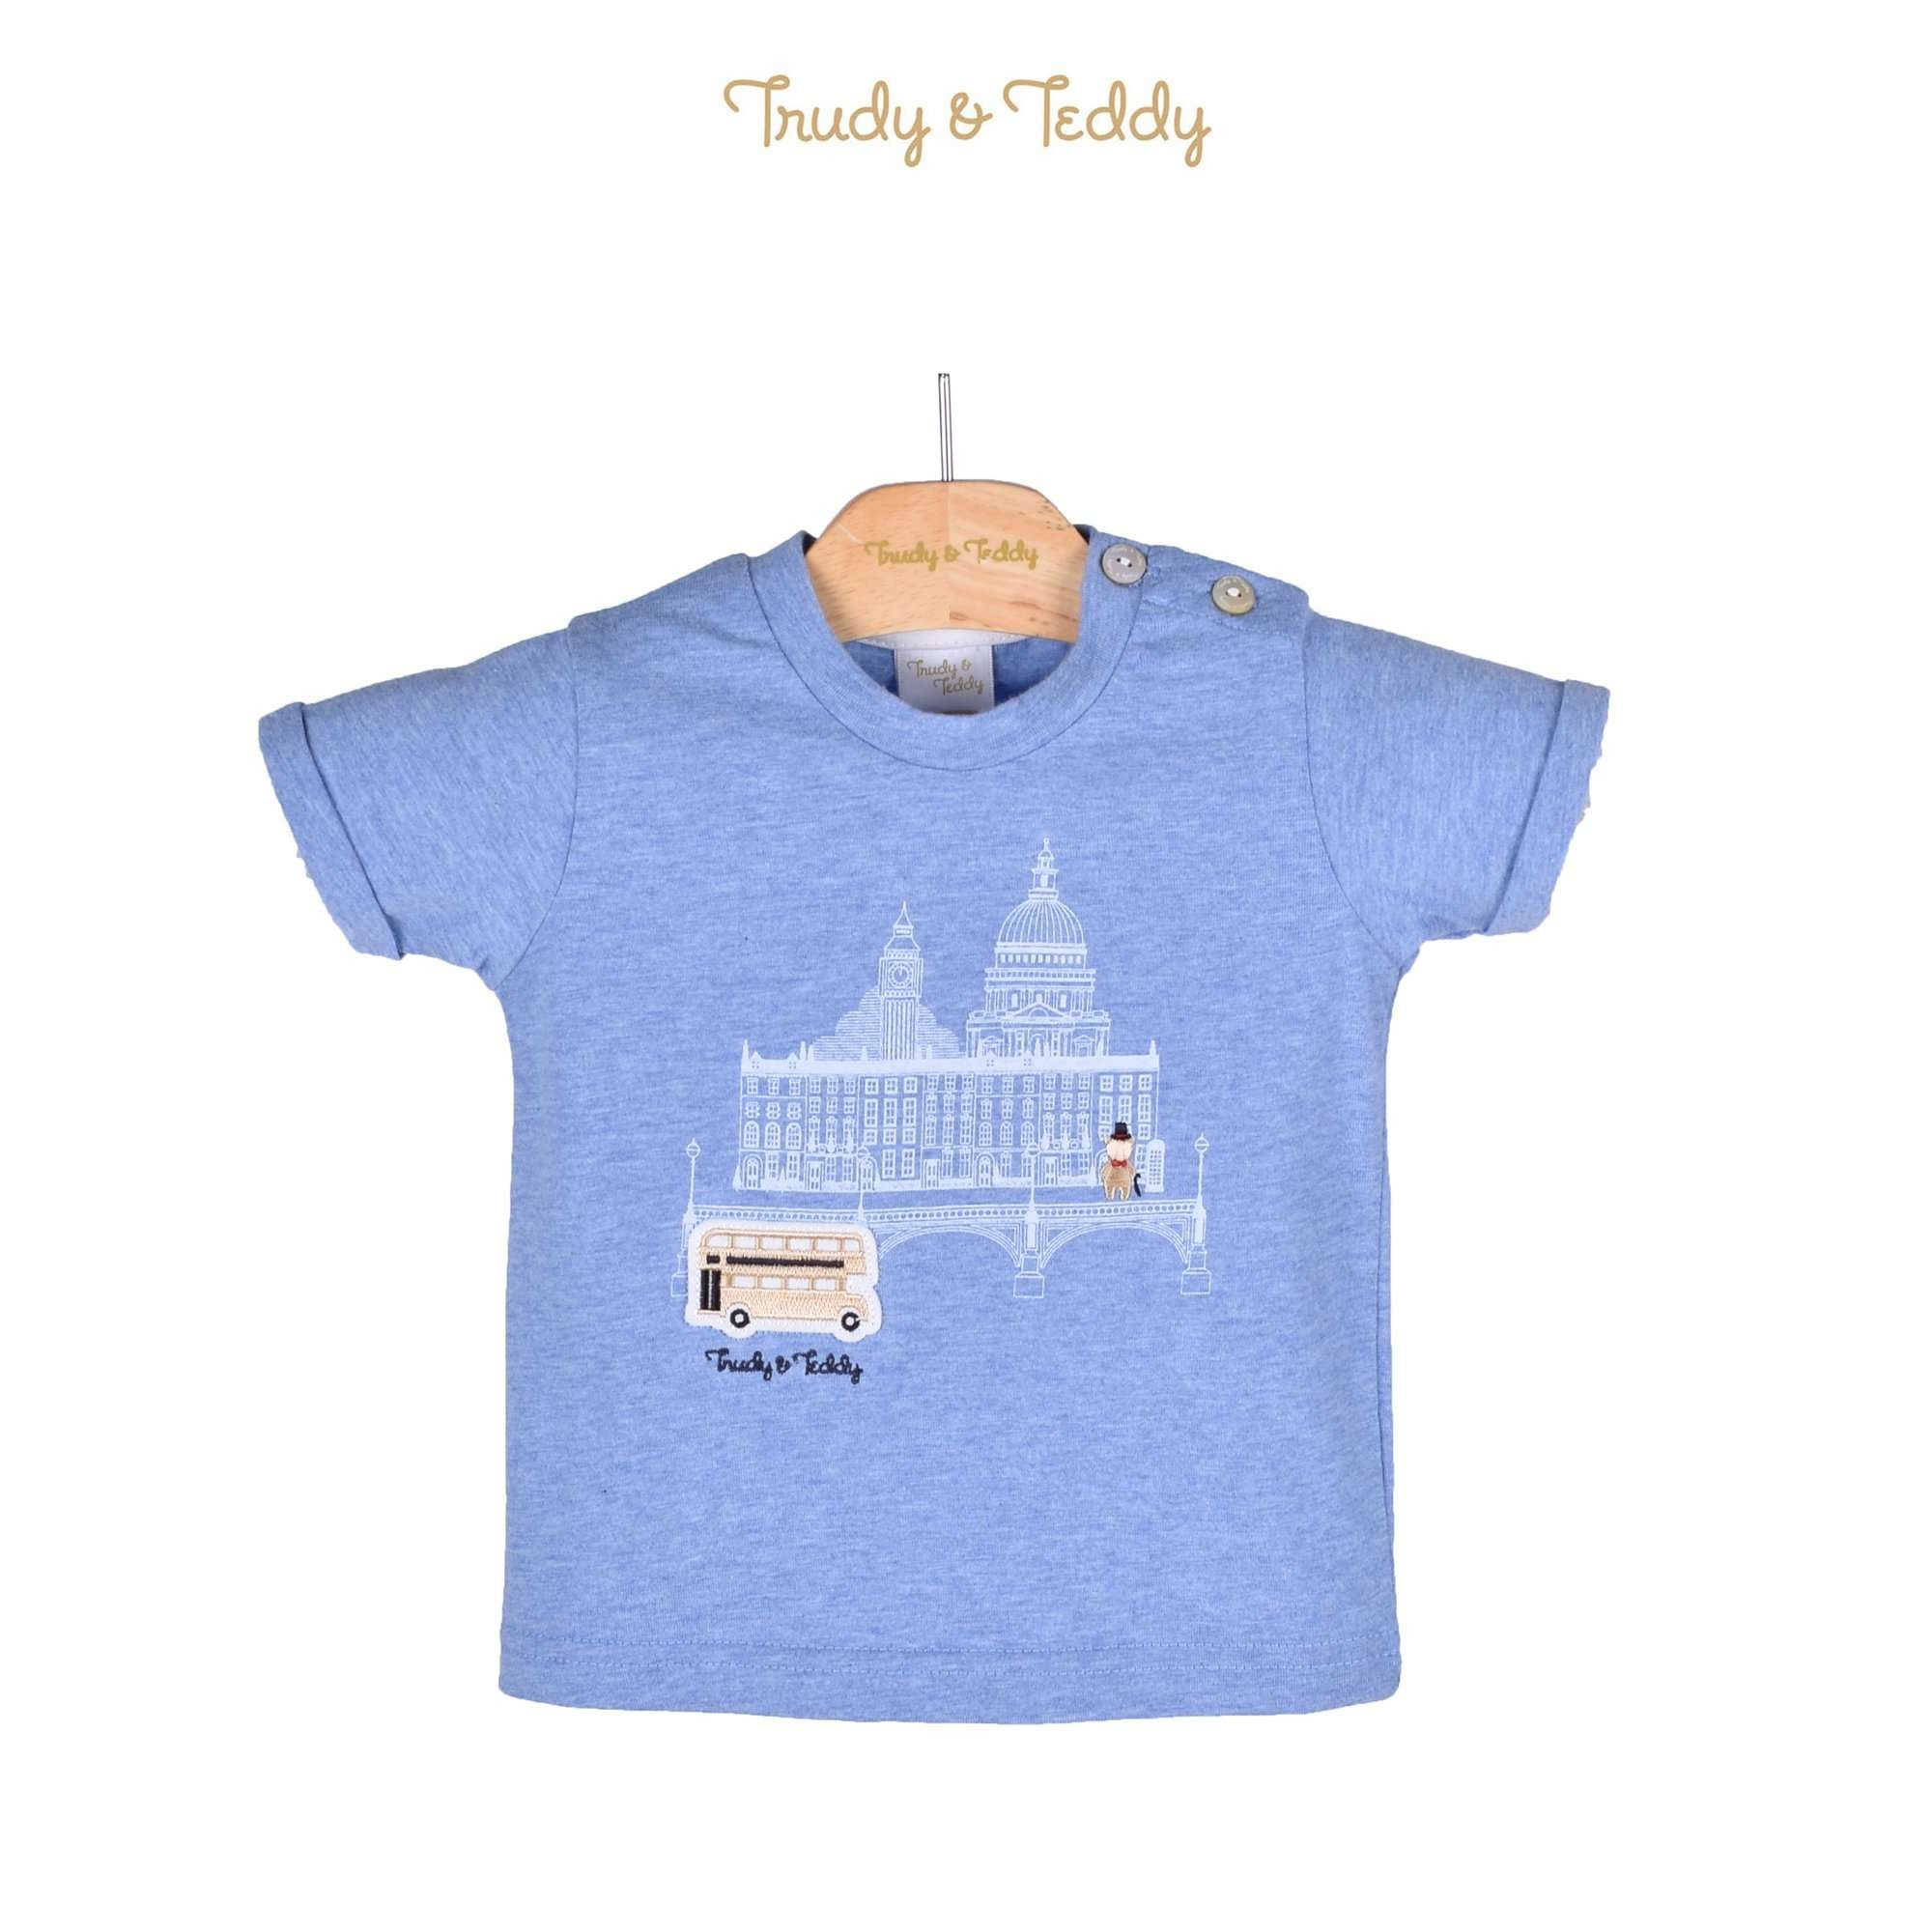 Trudy & Teddy Baby Boy Short Sleeve Tee 810106-111 : Buy Trudy & Teddy online at CMG.MY